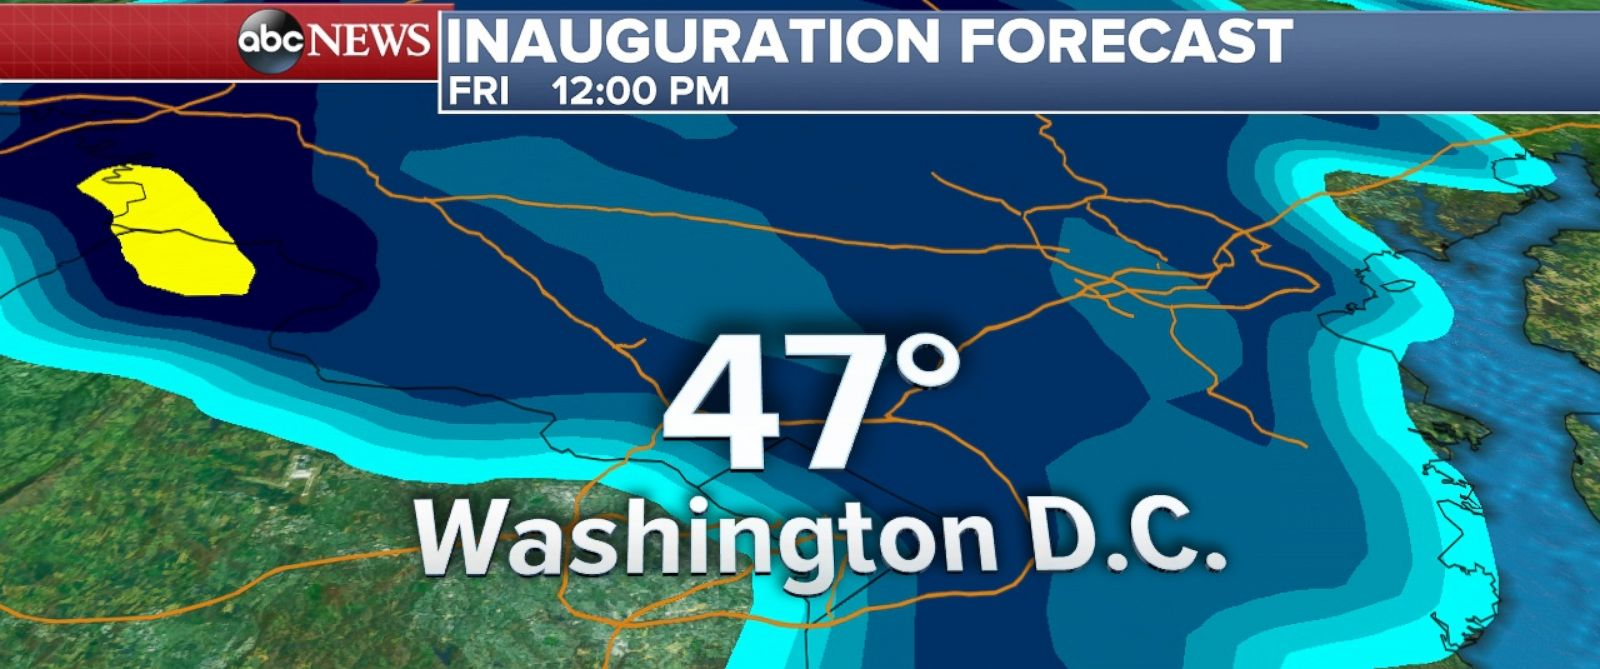 PHOTO: Rain2: Inauguration Weather Forecast at 12PM for Washington, D.C.